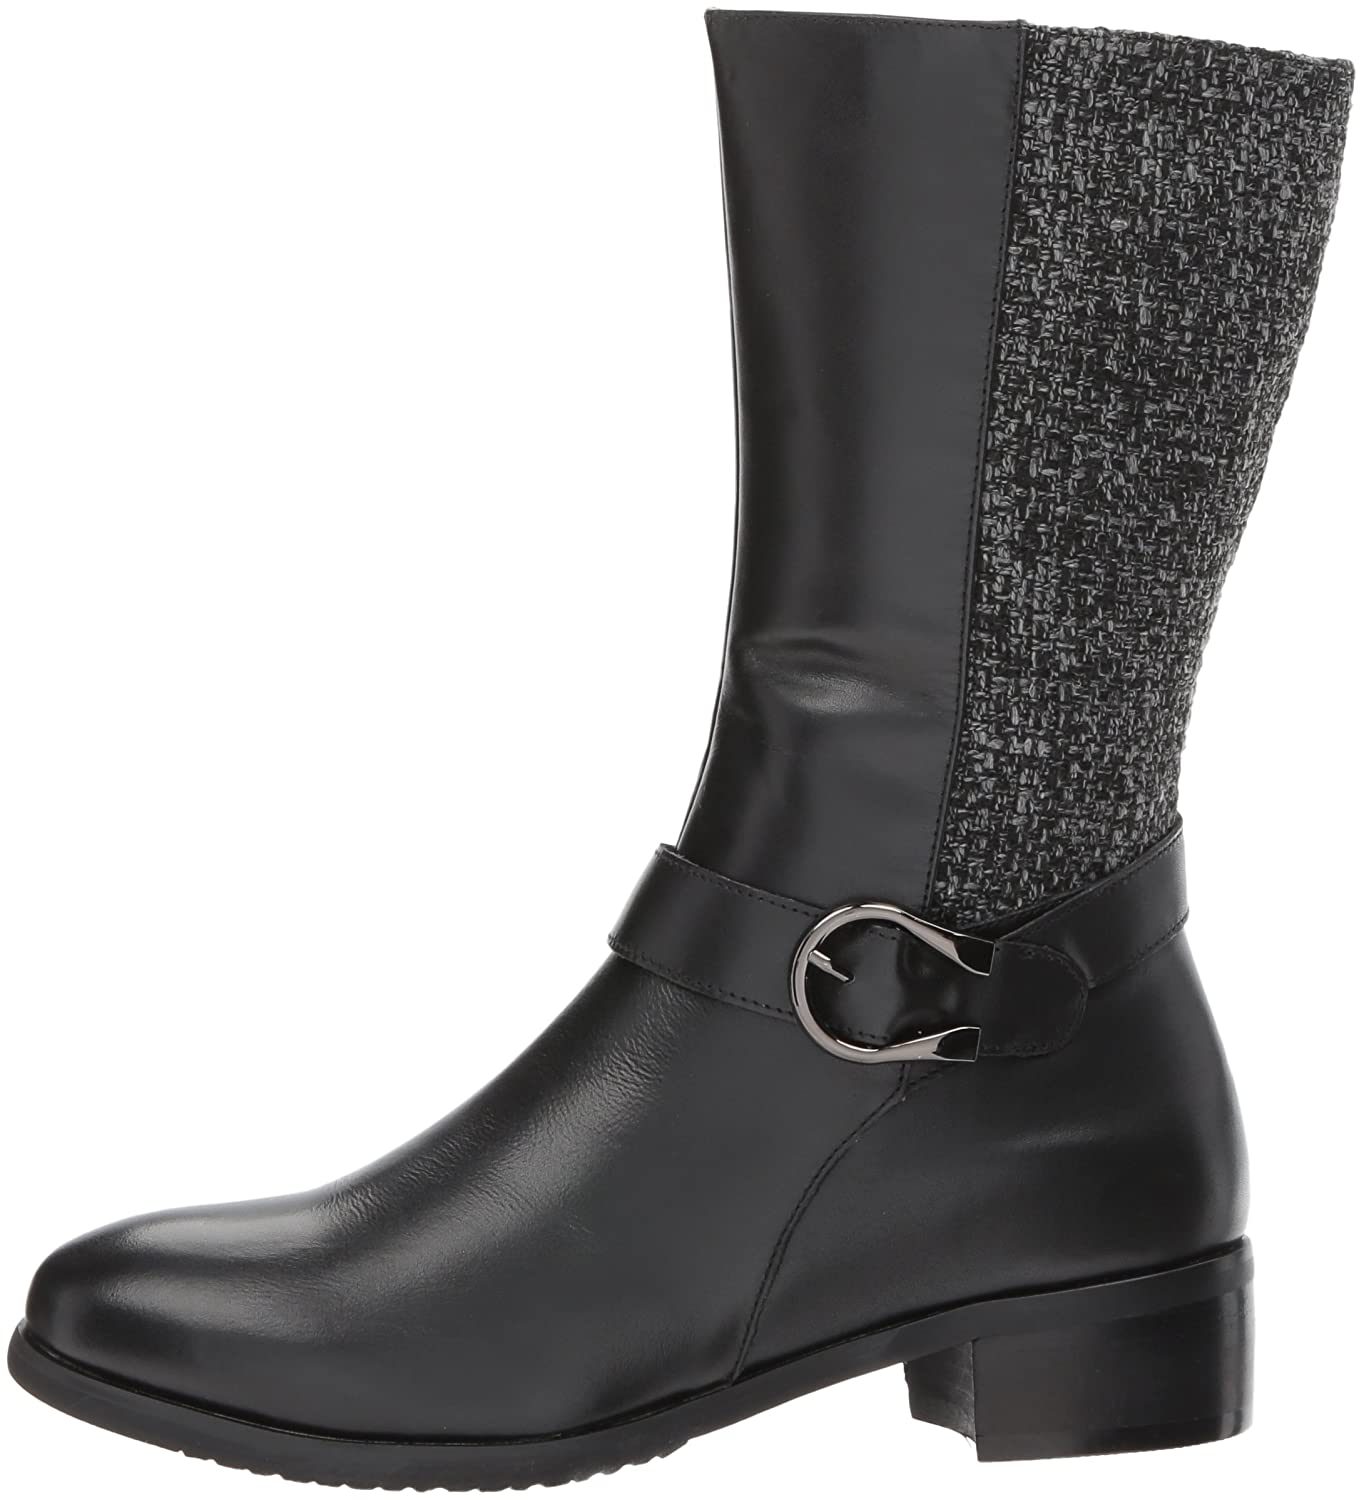 Propét Women's B01NBF4KCR Tessa Riding Boot B01NBF4KCR Women's 9.5 2E US|Black 8e3bdd